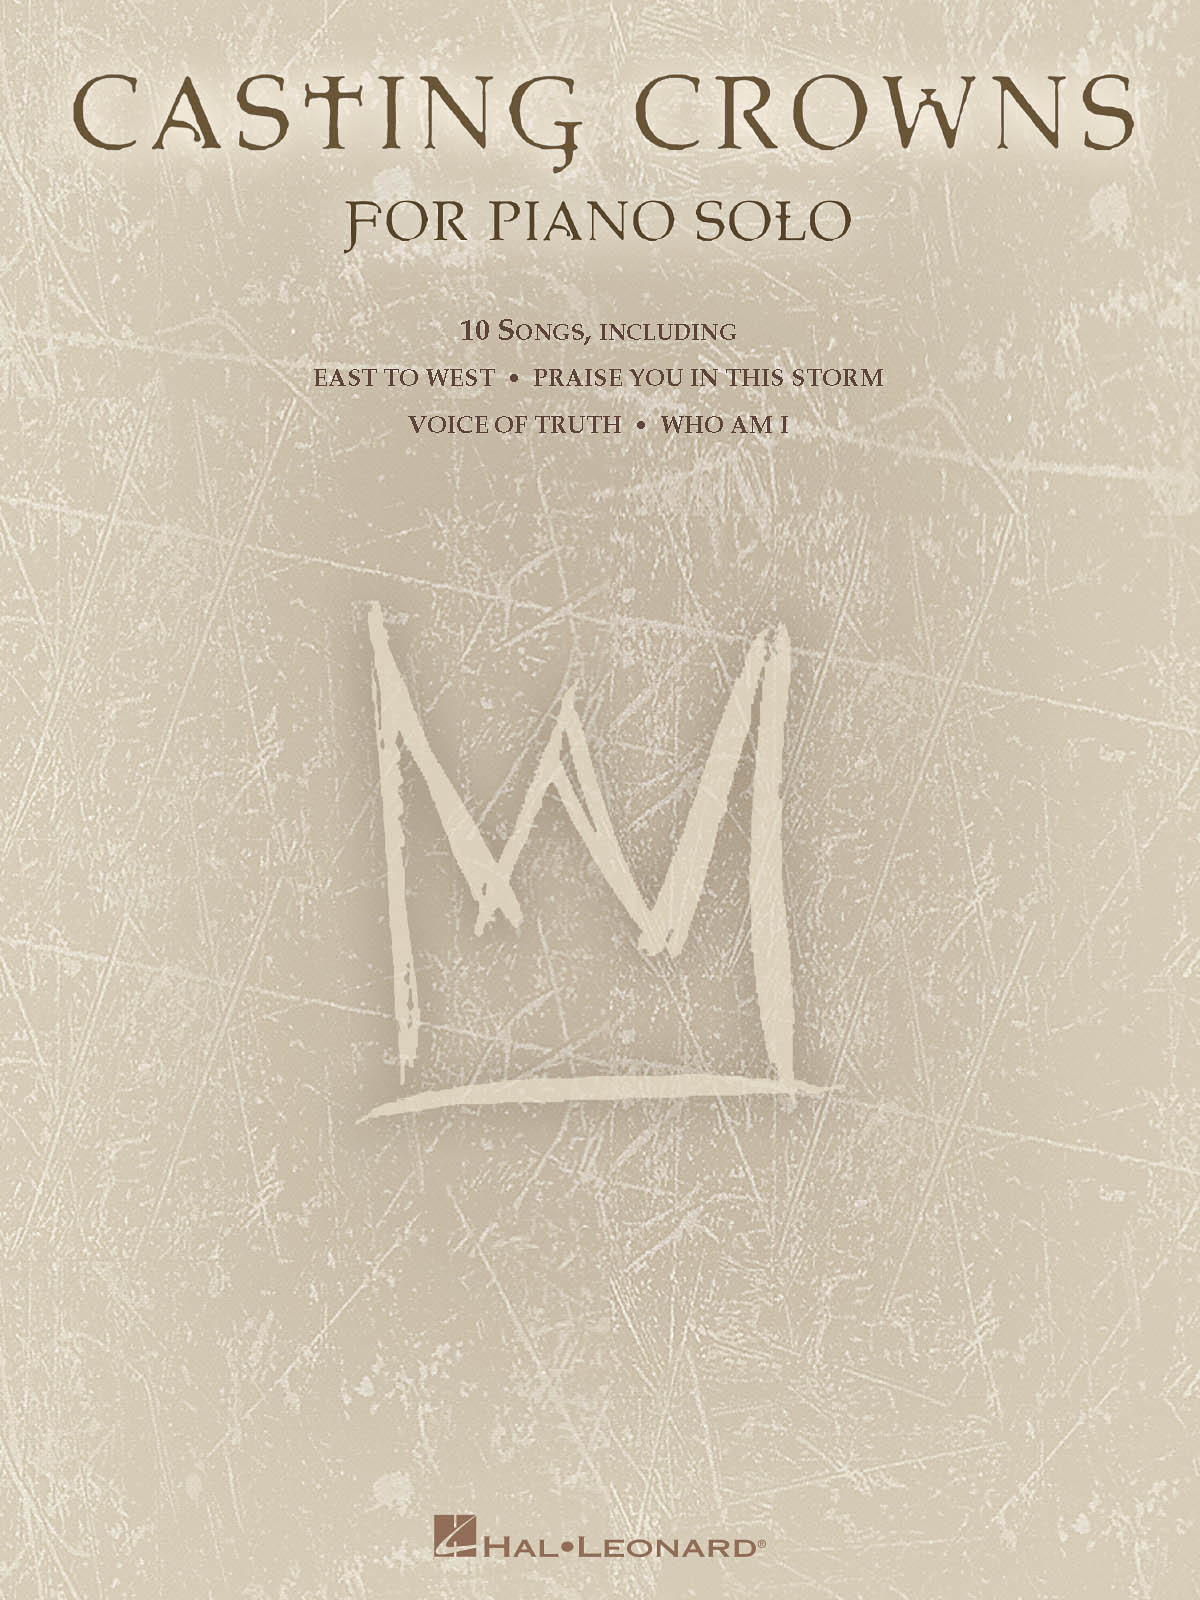 Casting Crowns: Casting Crowns for Piano Solo: Piano: Instrumental Album